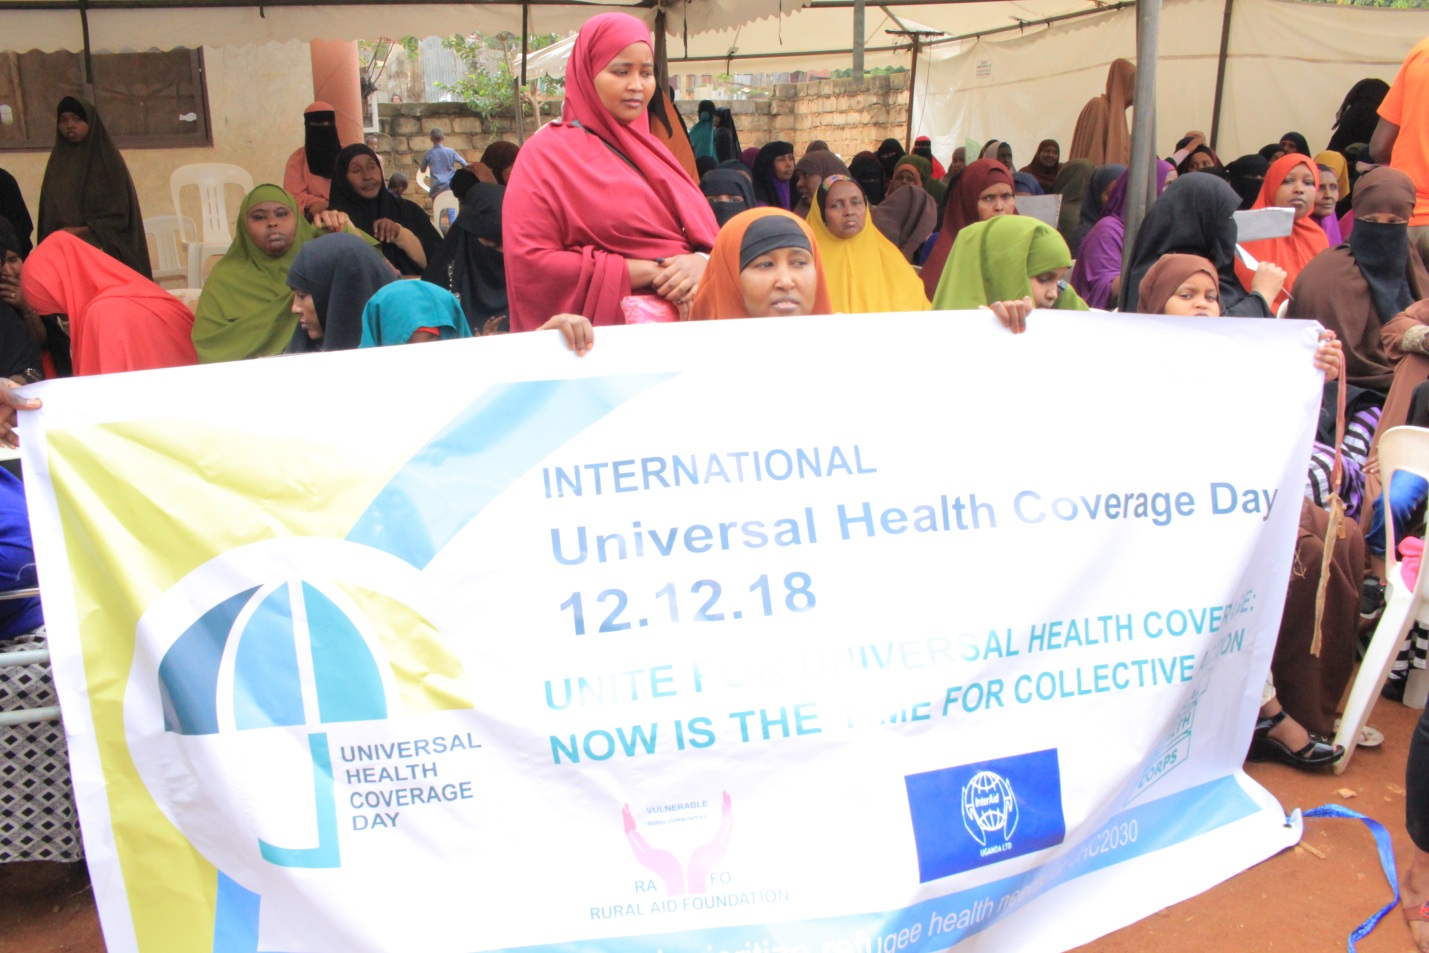 UNIVERSAL HEALTH COVERAGE DAY 2018-Prioritize refugee health needs for Universal Health coverage